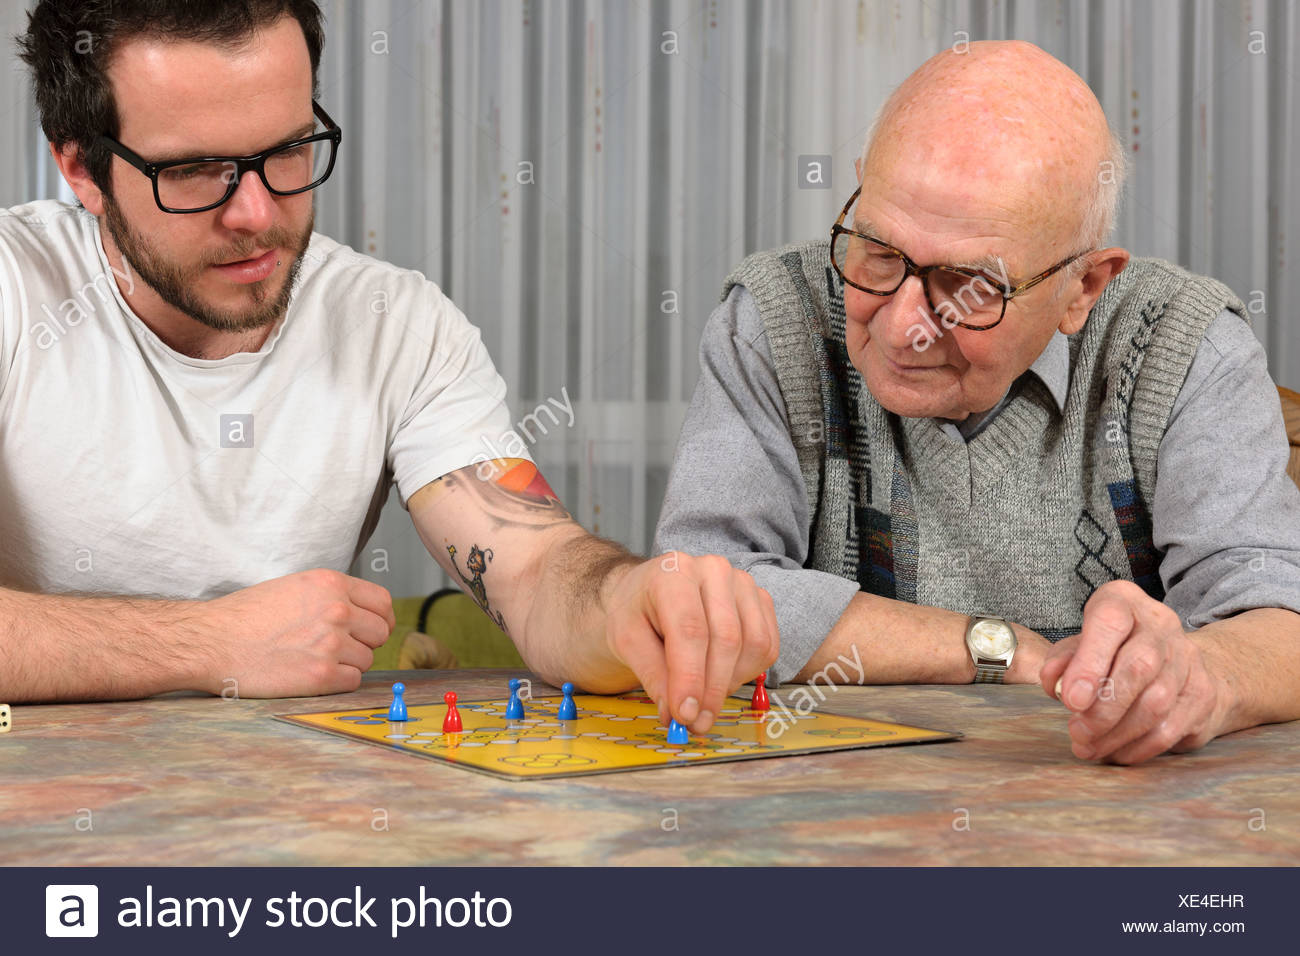 Grandfather and grandson playing together ludo at home Stock Photo